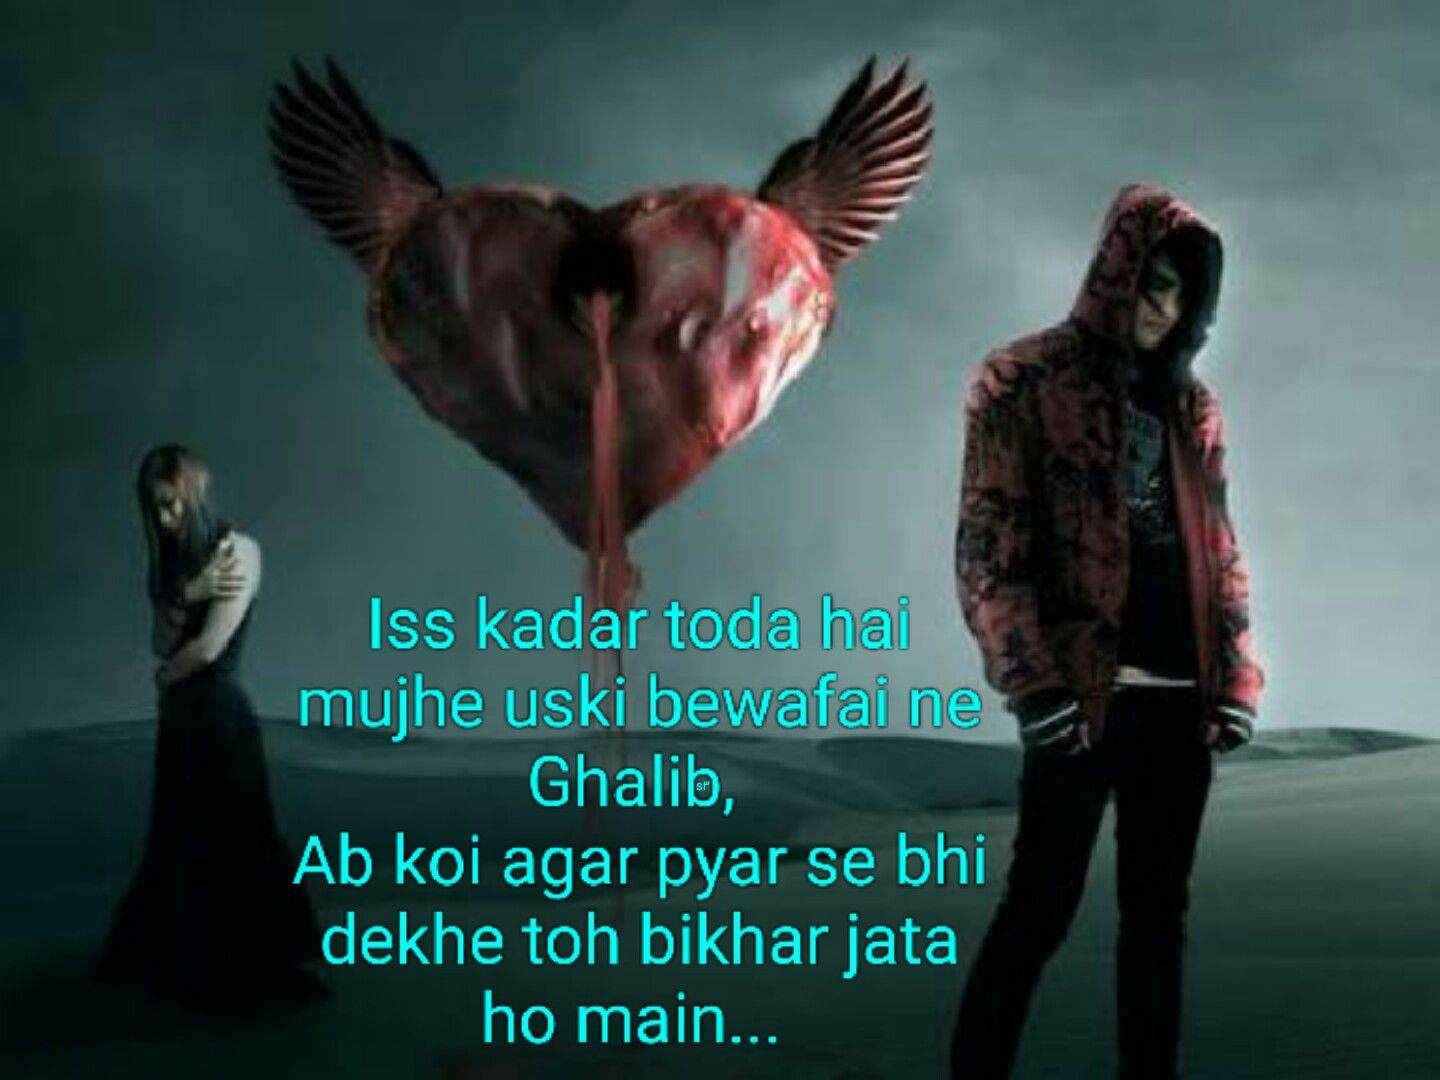 Pin By Sugam Shuzeet On Love Quotes Love Couple Photo Animated Love Images Broken Love Images